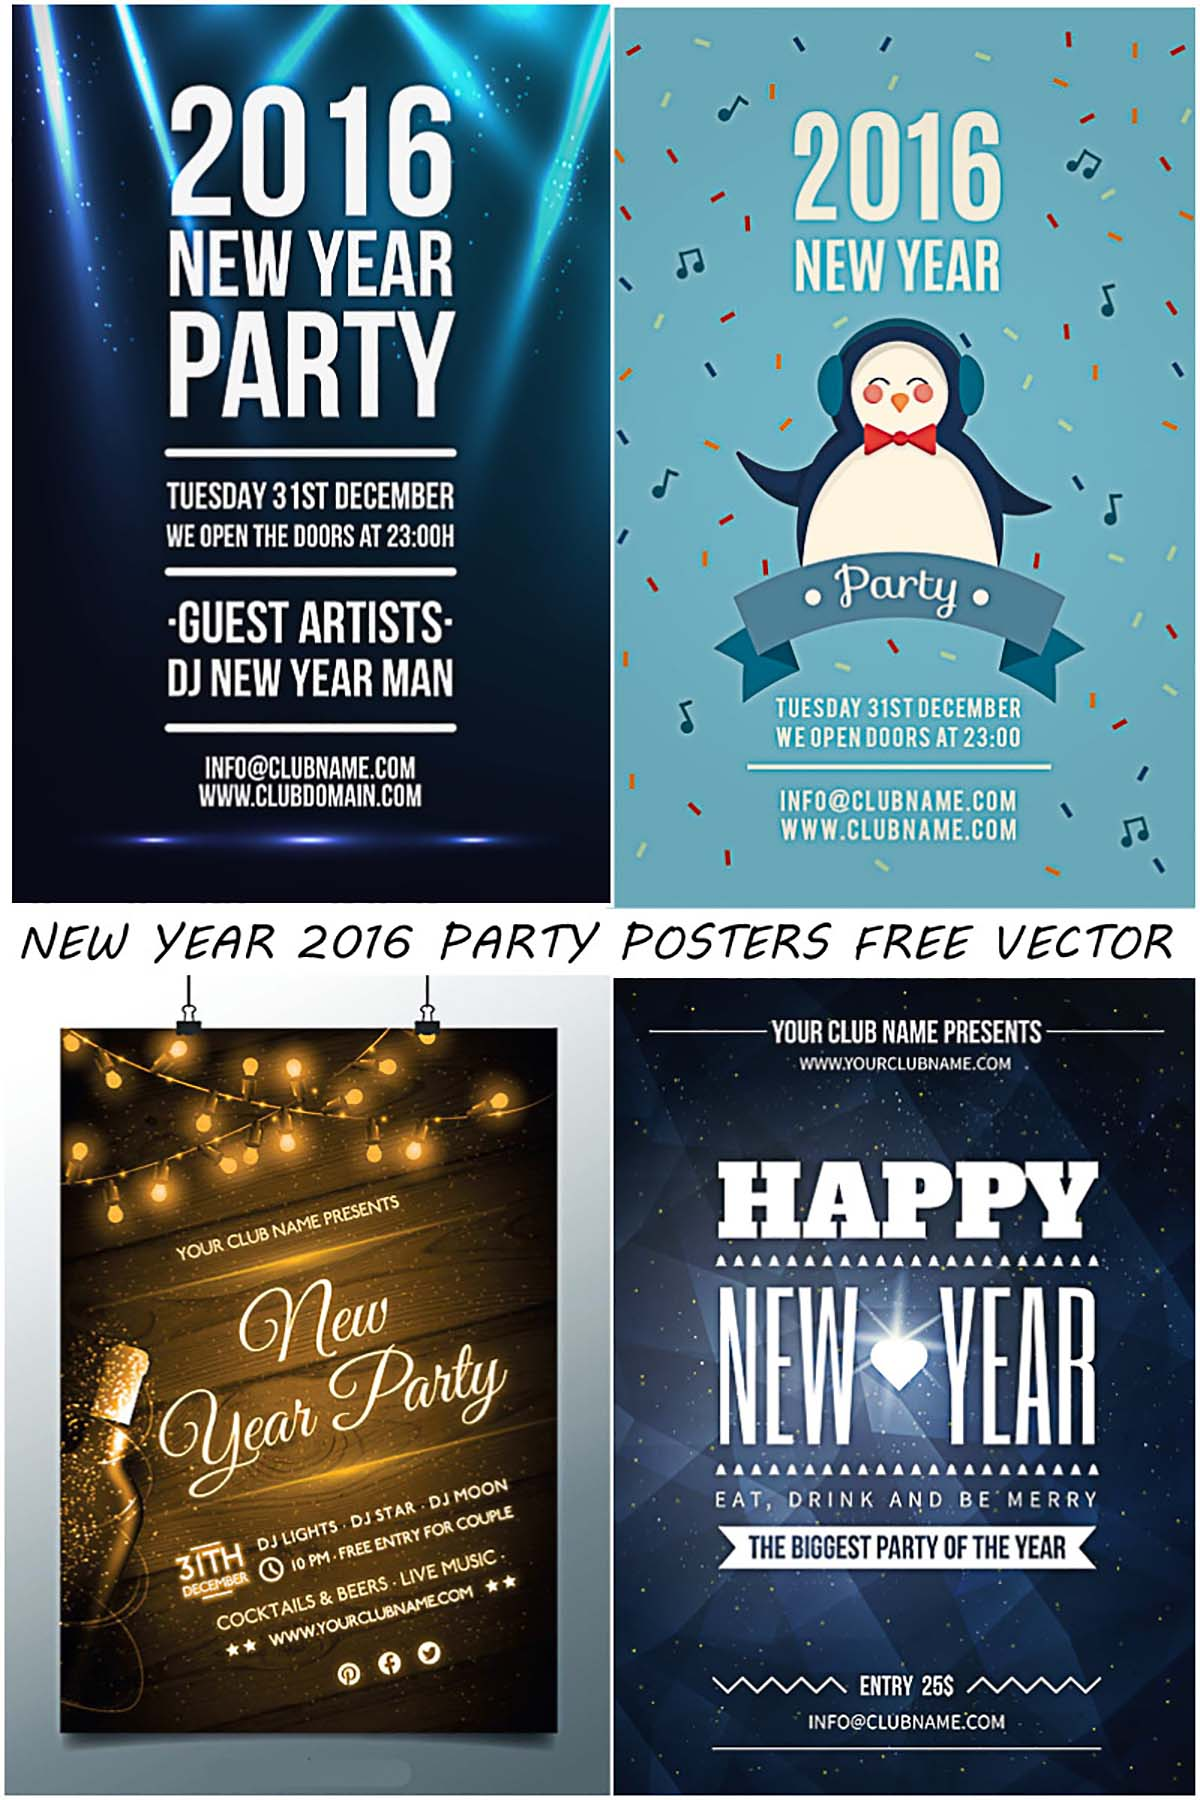 Cute party posters for Christmas and New Year 2016 free vector set